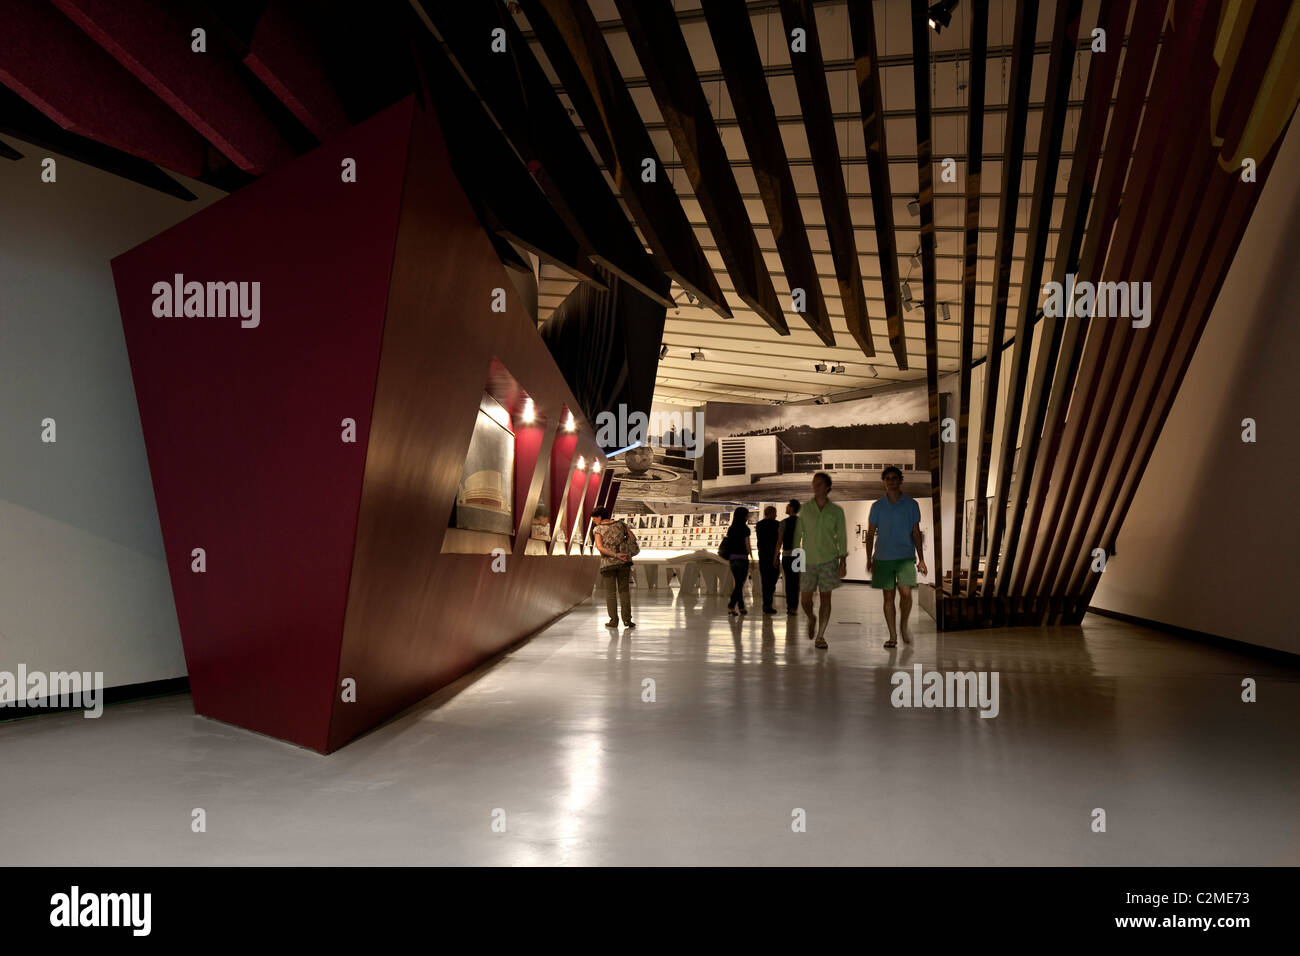 Entrance to architecture exhibit at the MAXXI, National Museum of 21st Century Arts, Rome. - Stock Image